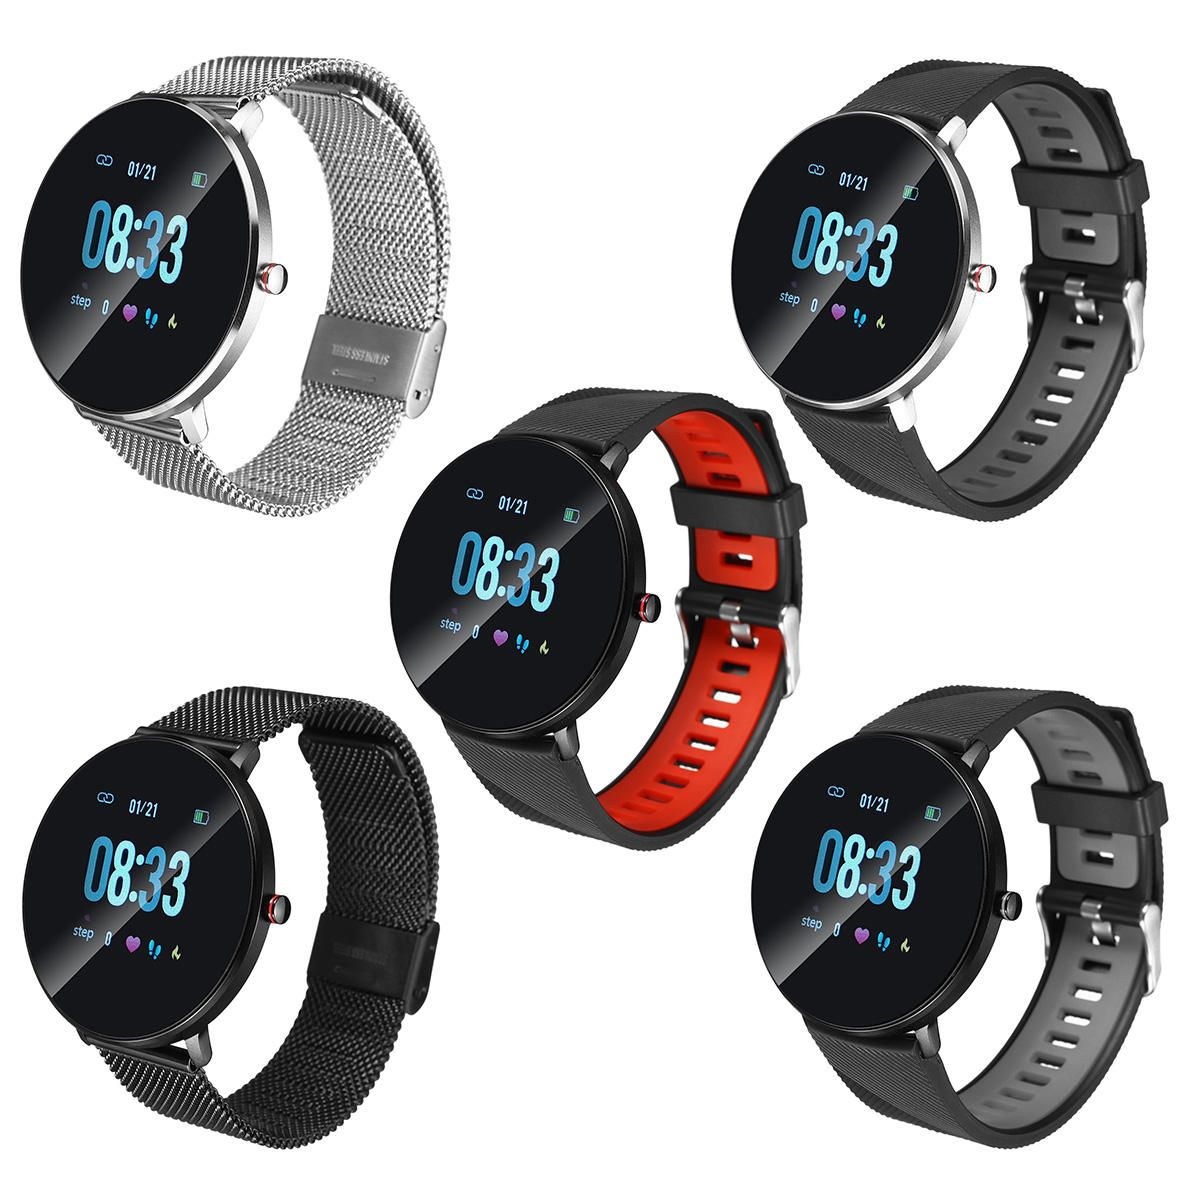 KQF US$26.99~28.99 KALOAD L10 1.65in IPS Color Touch Screen IP68 Waterproof Smart Watch ECG+PPG Heart Rate Monitor Stopwatch Countdown Sports Bracelet Fitness Tracker